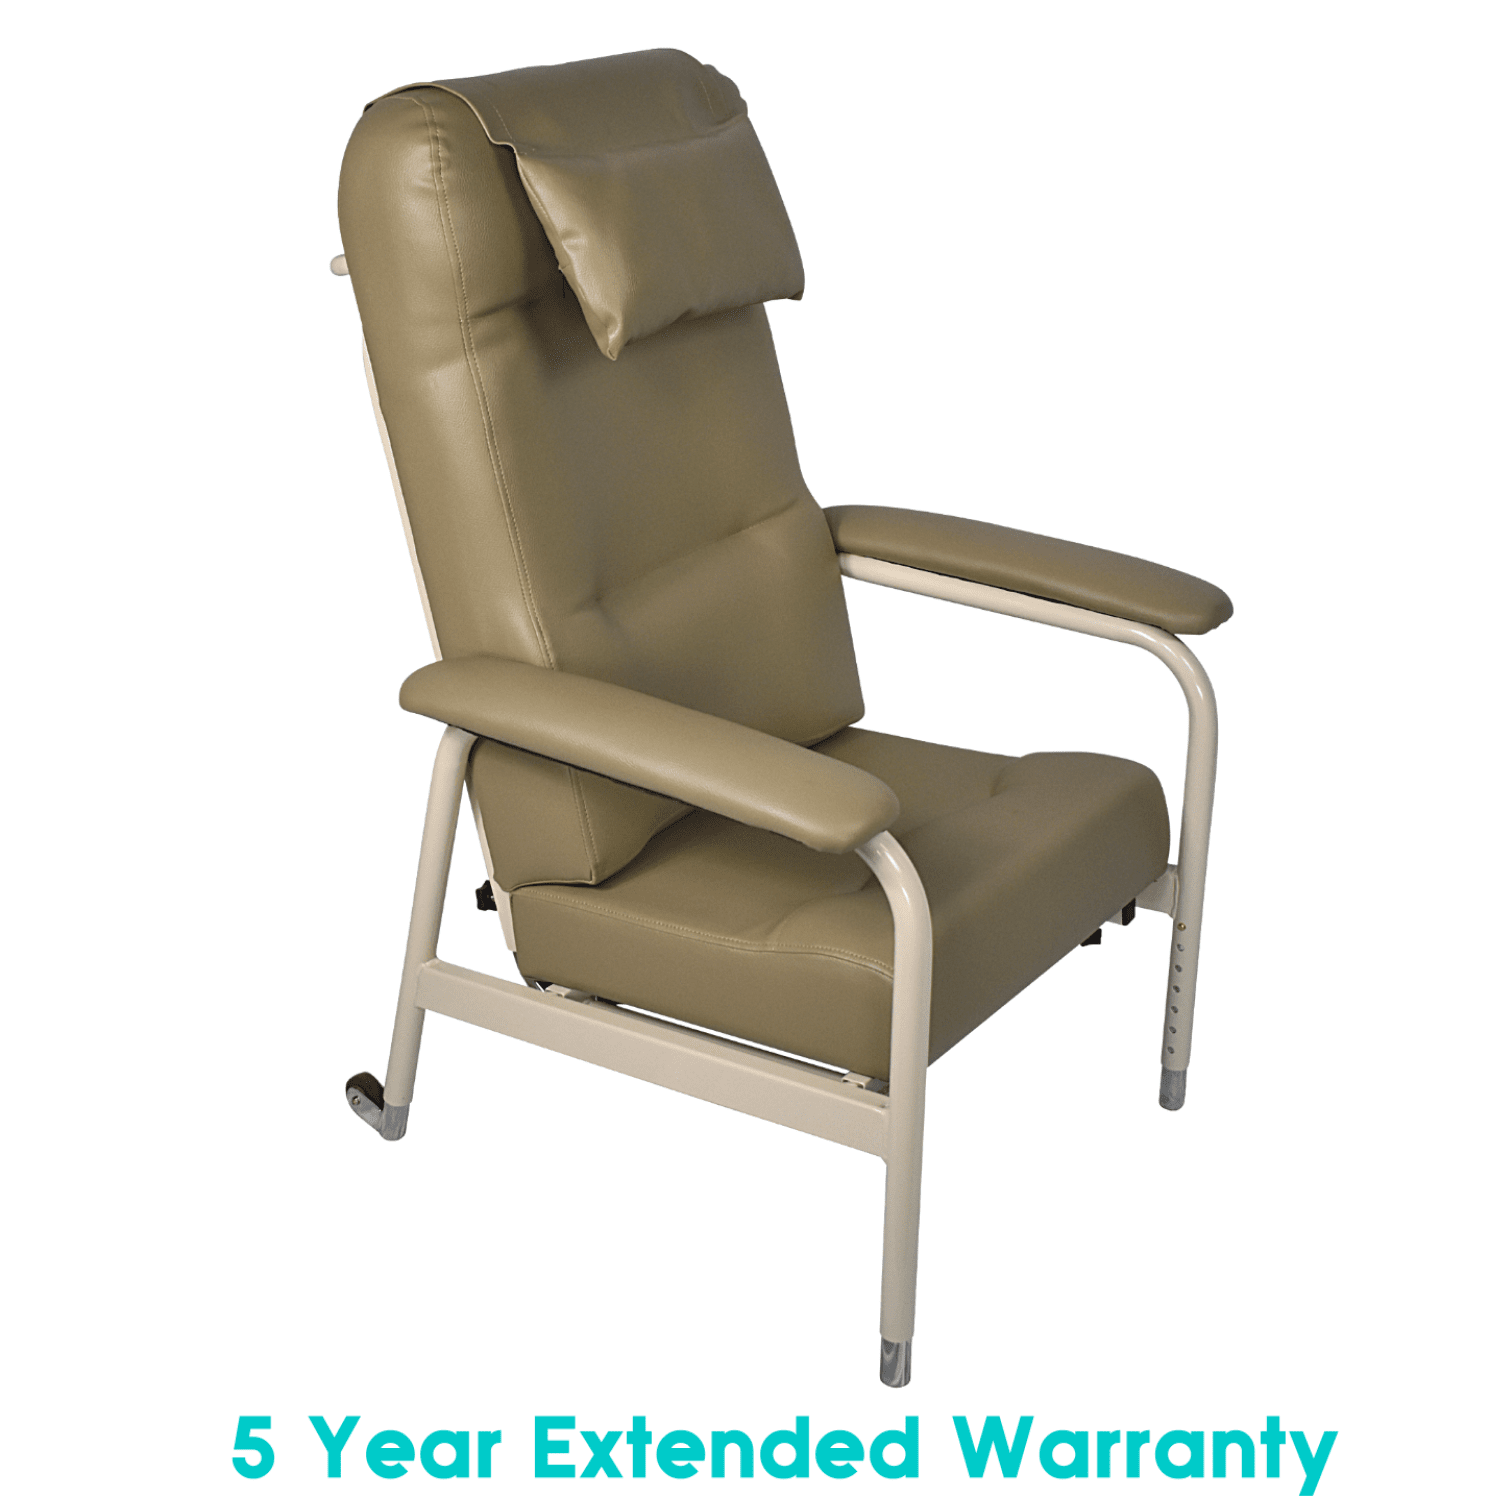 Aspire Adjustable Day Chair – Product Image